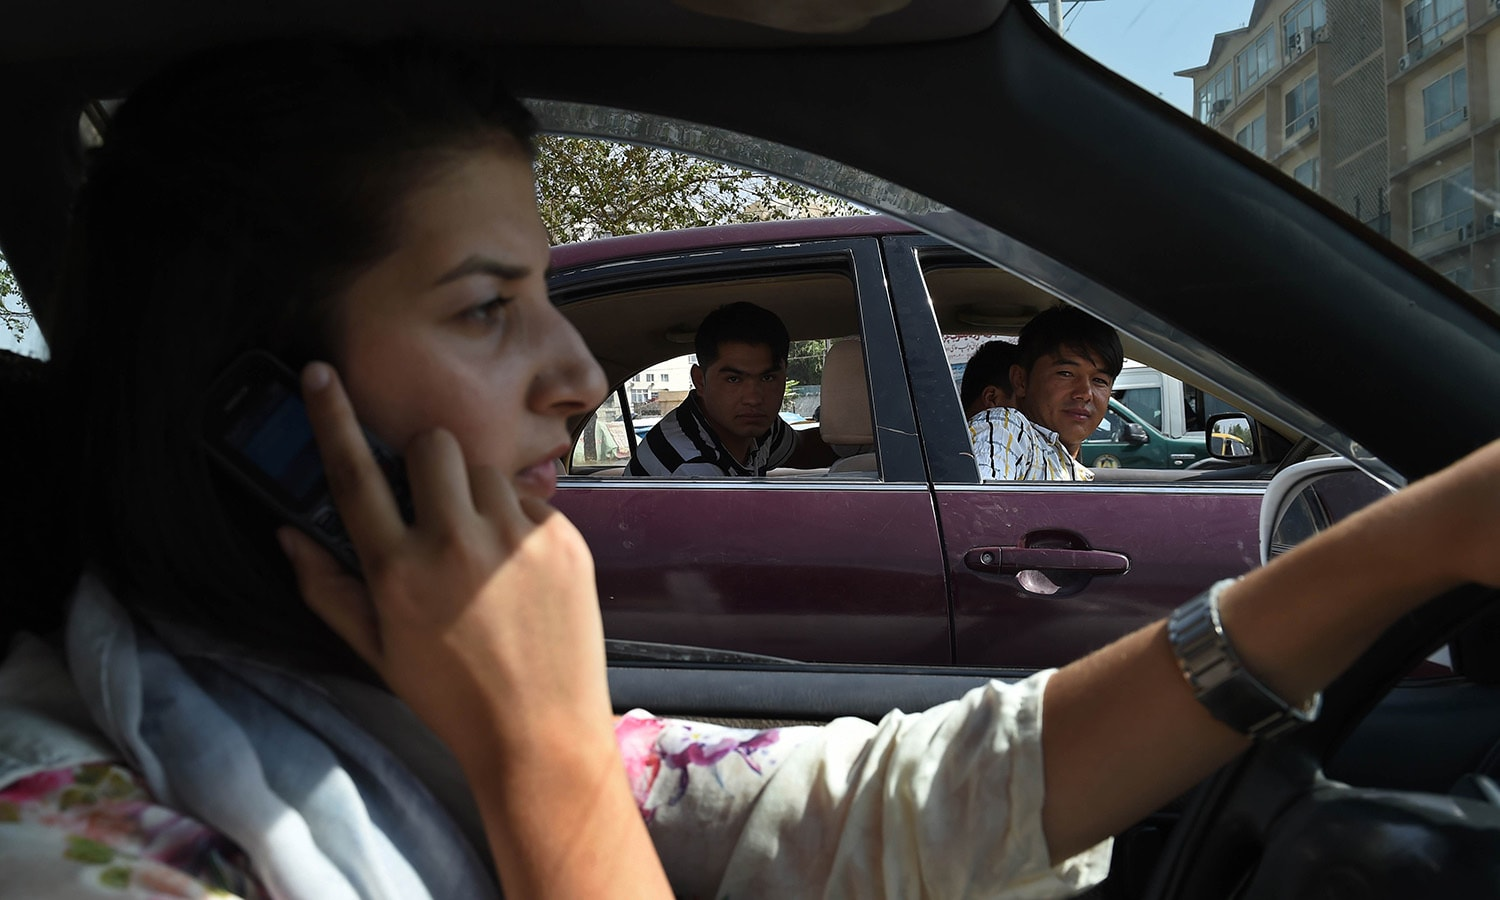 In this photograph taken on September 4, 2015,  Afghan woman, Rokhsar Azamee, 23, drives her car as Afghan youths stare at her in the streets of Kabul. — AFP